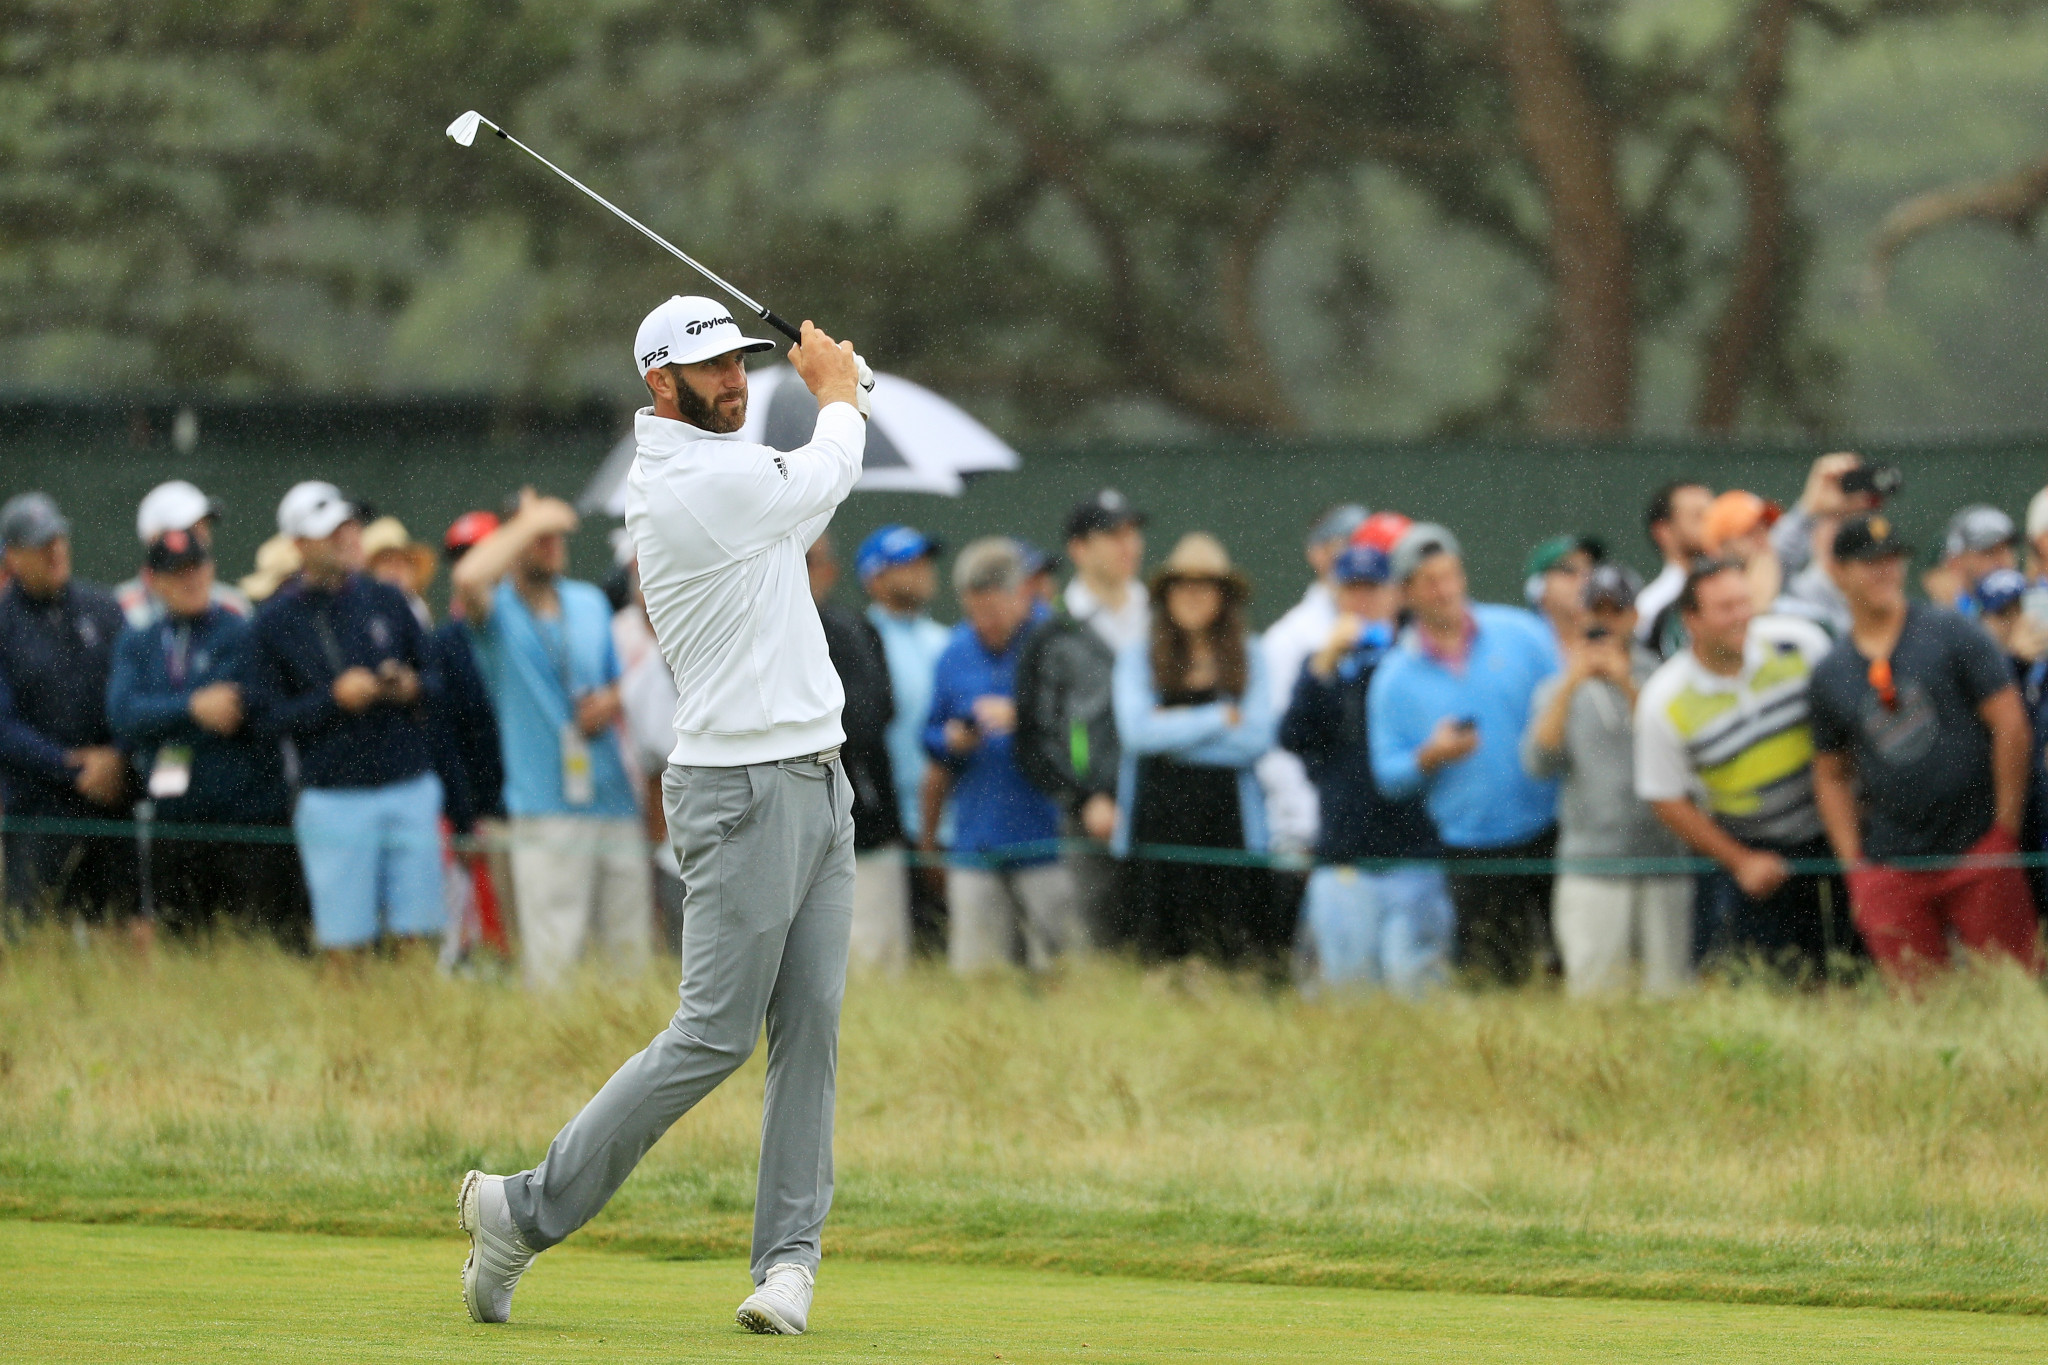 Tommy Fleetwood charge in vain as Brooks Koepka retains US Open title